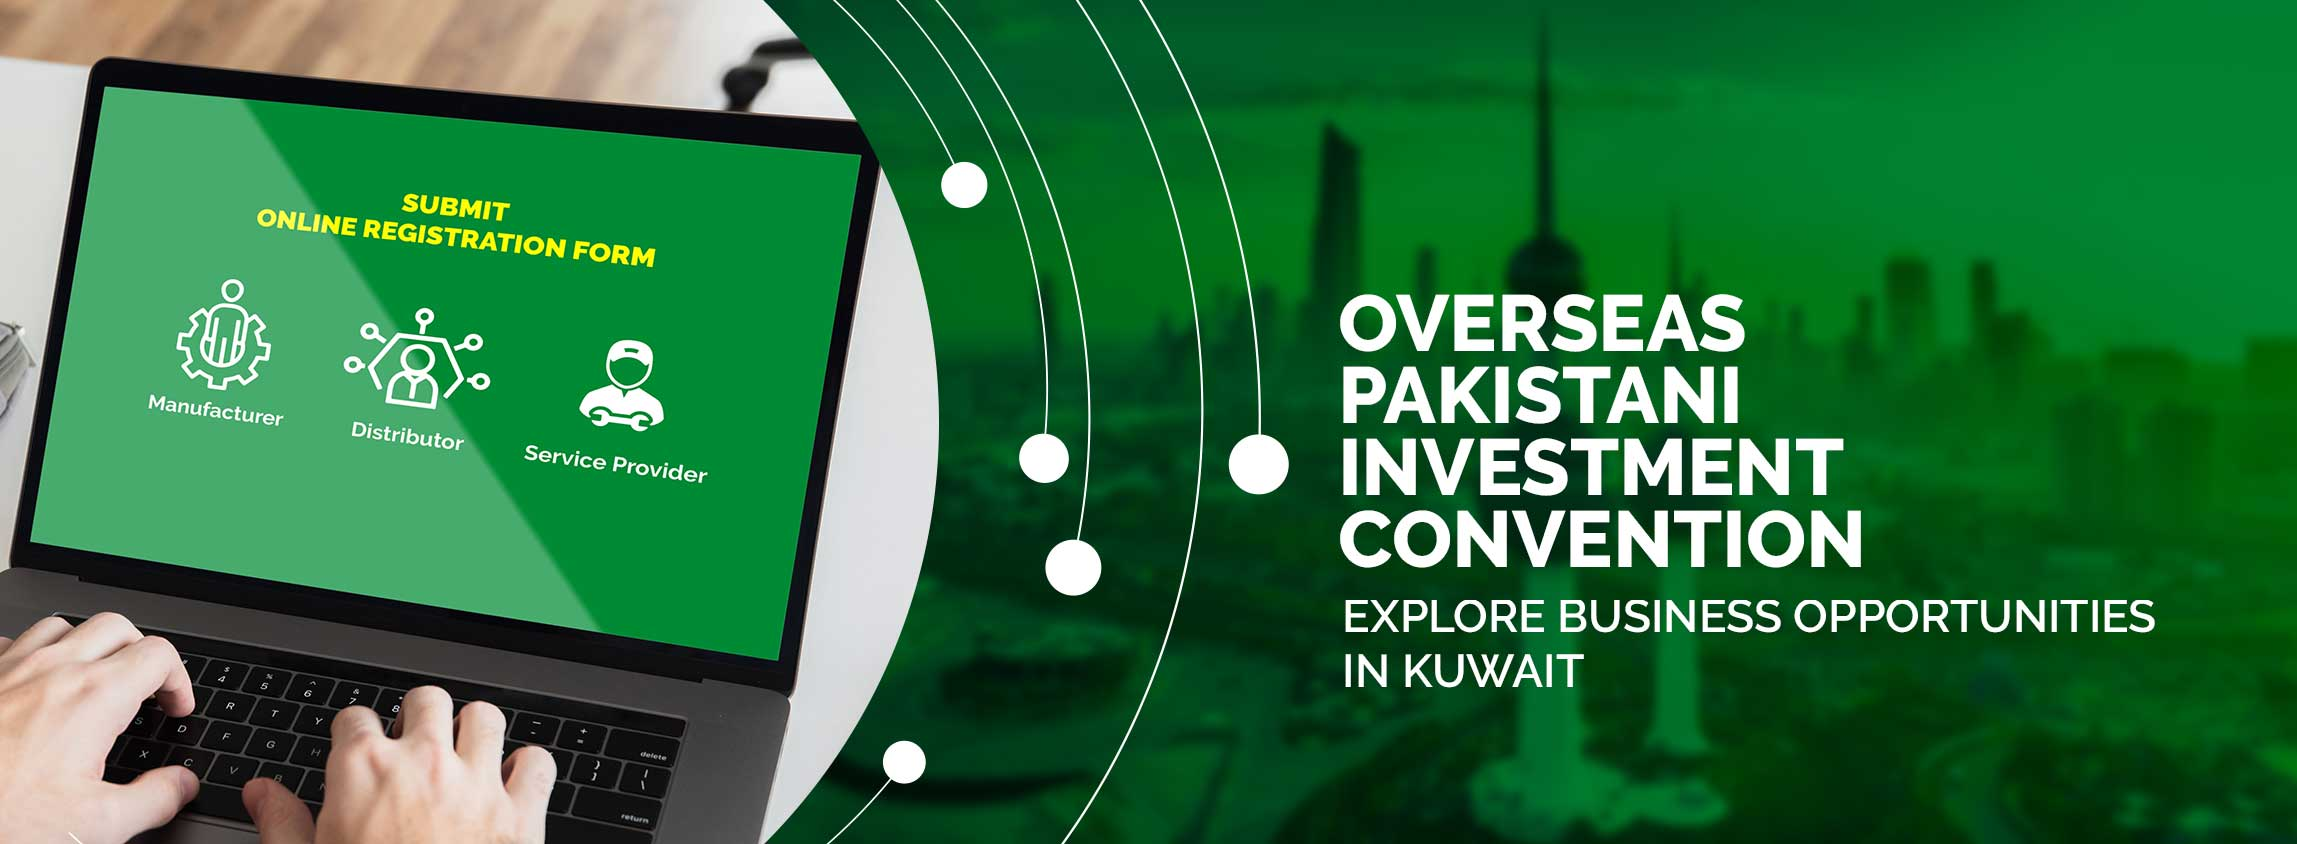 Overseas Pakistani Investment Convention 2019 Islamabad